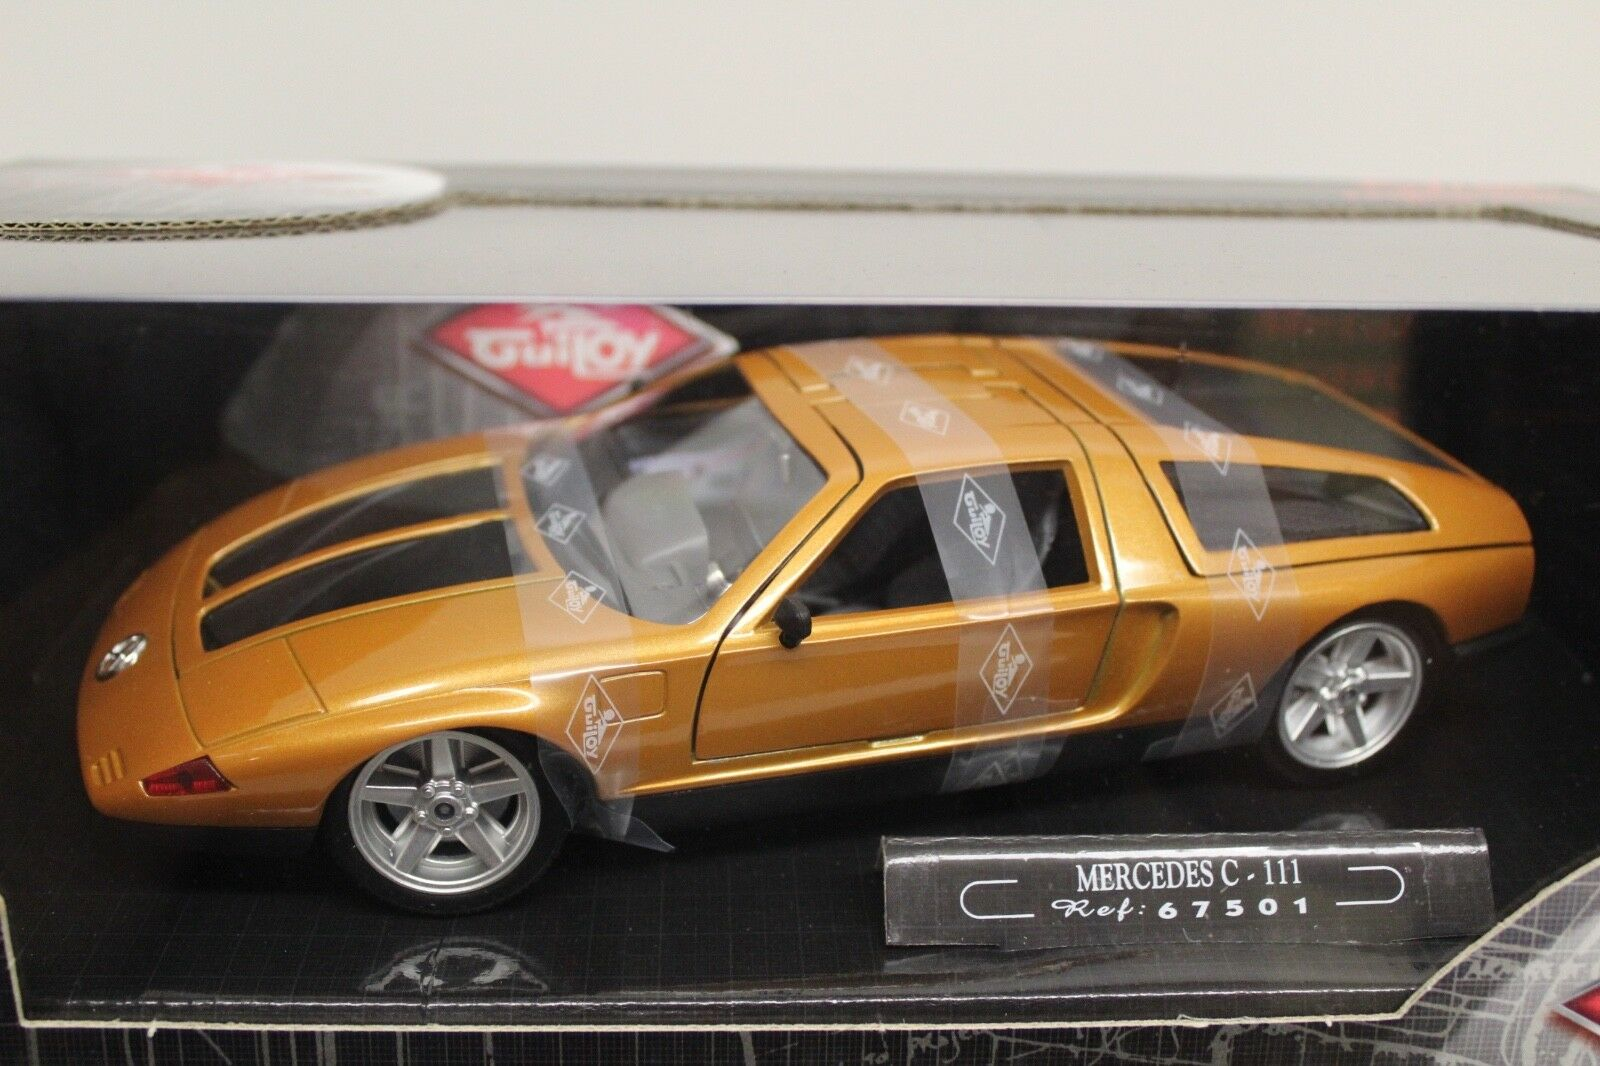 MERCEDES C 111 1969 Oro Arancione 1:18 NUOVO LIMITED EDITION Factory NEW Guiloy